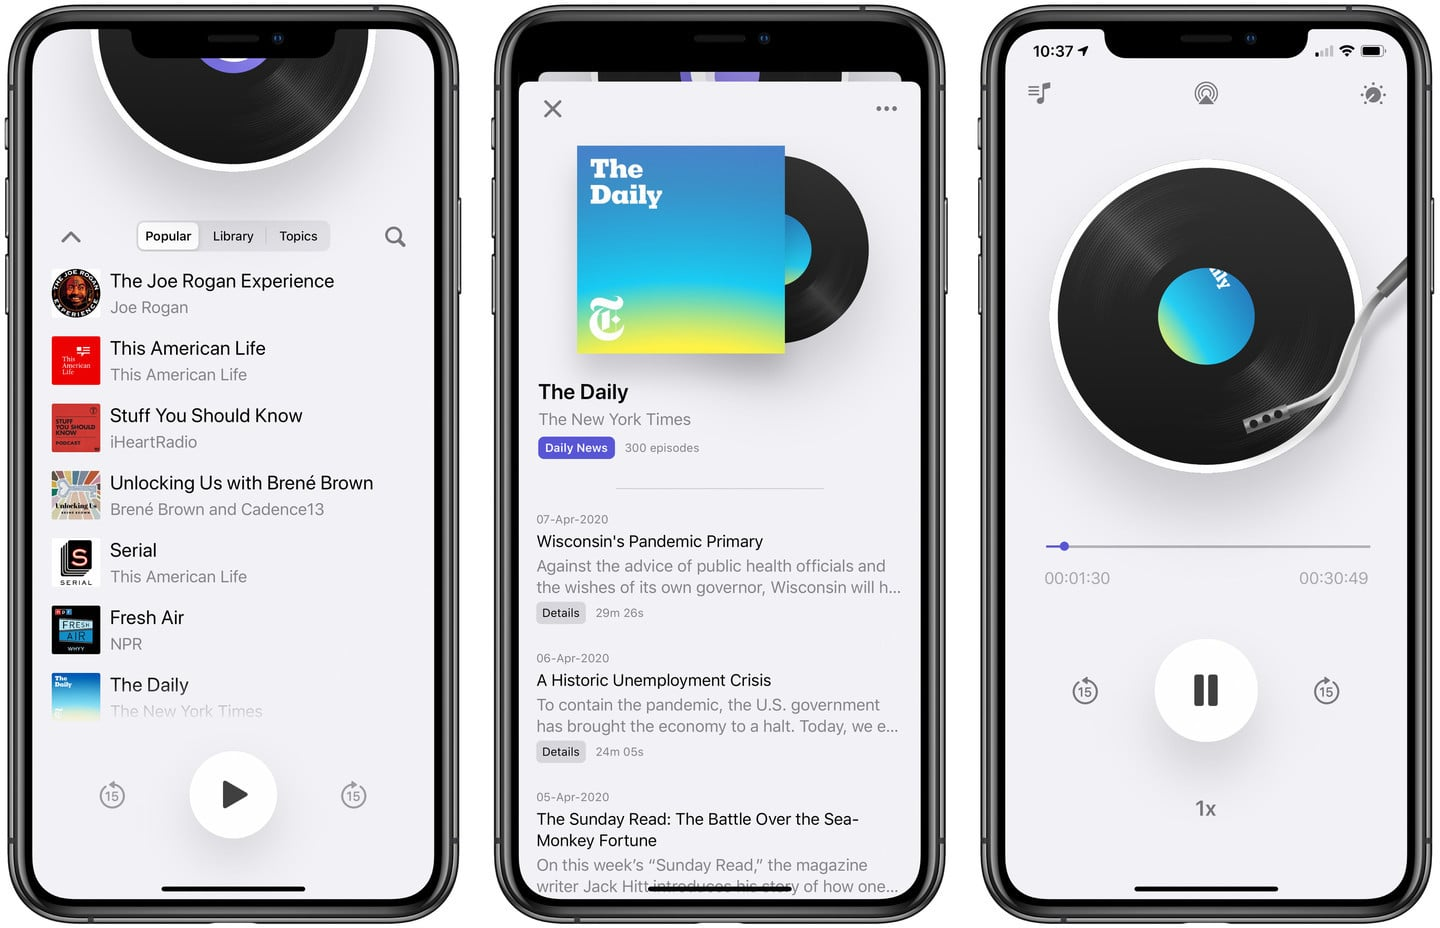 Podcast App Cosmicast Brings an Old-School Skeuomorphic Touch